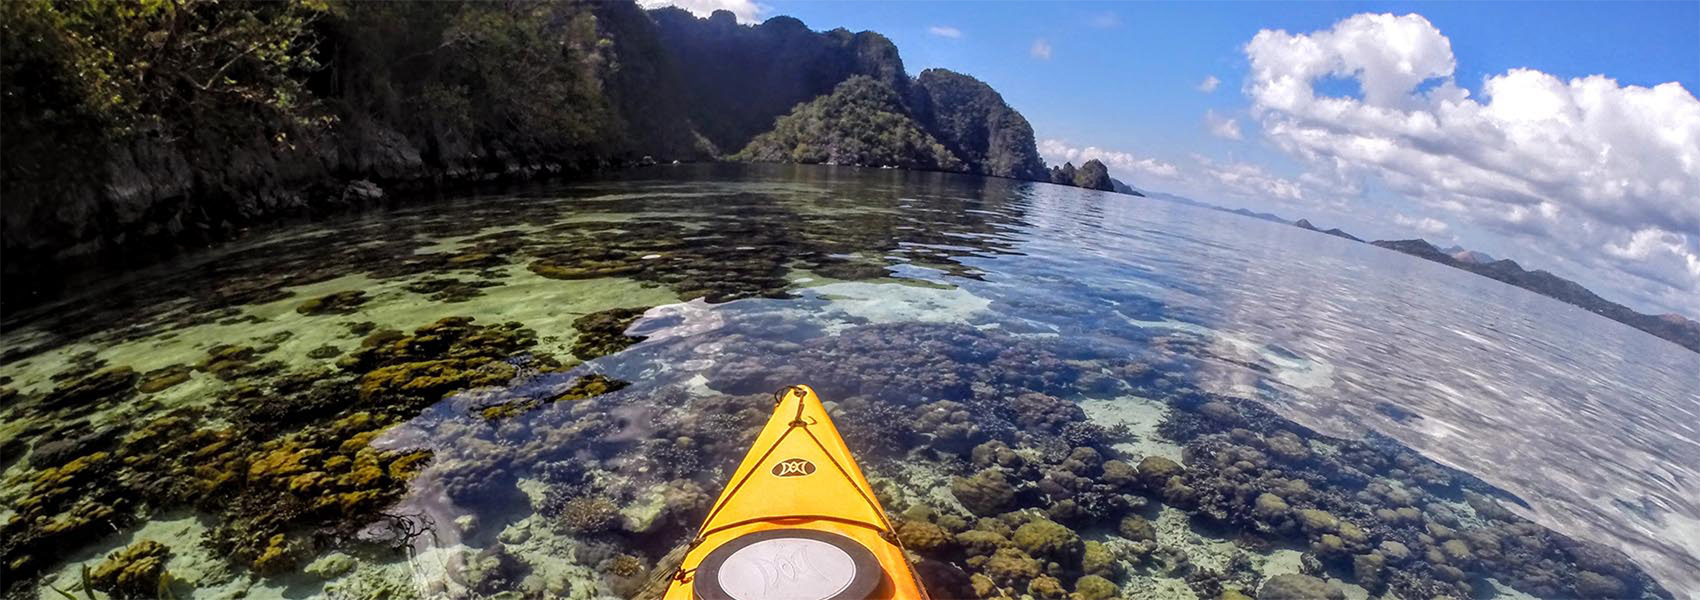 Ultimate Coron Kayak Day Trip